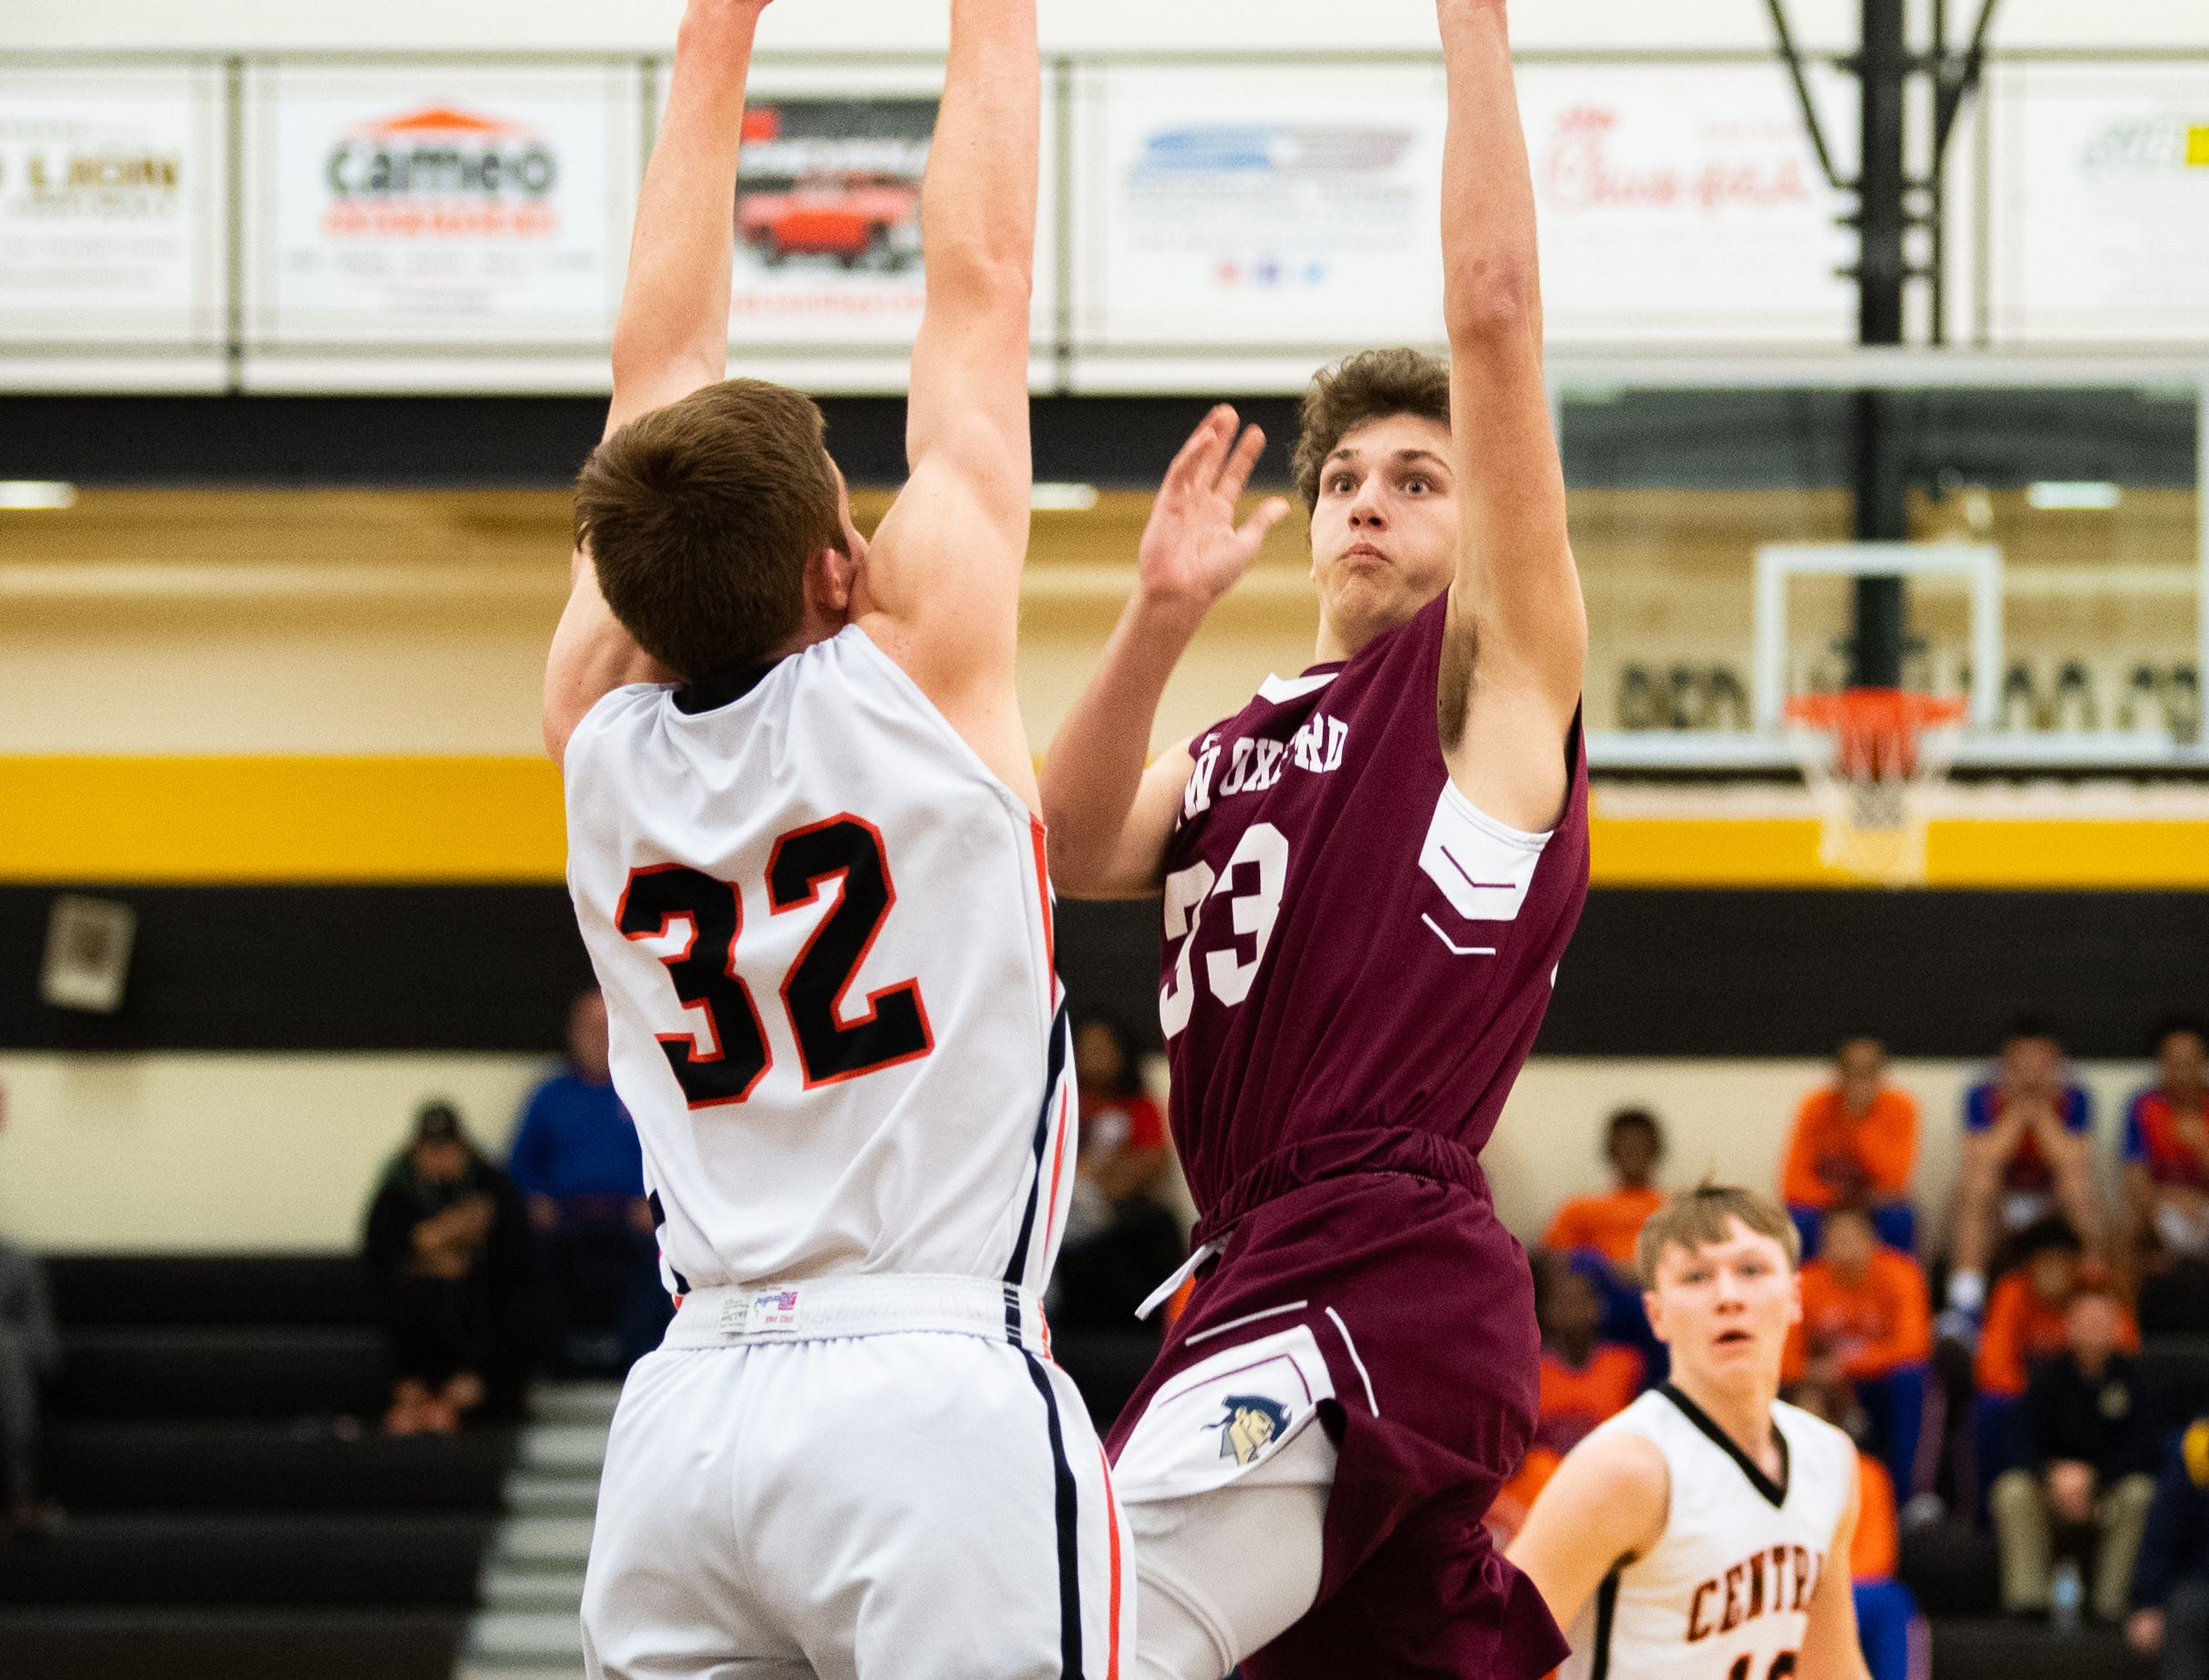 Connor Jenkins (33) takes the contested layup during the YAIAA boys' basketball semifinals between Central York and New Oxford, Wednesday, February 13, 2019 at Red Lion Area High School. The Colonials defeated the Panthers 43 to 41.